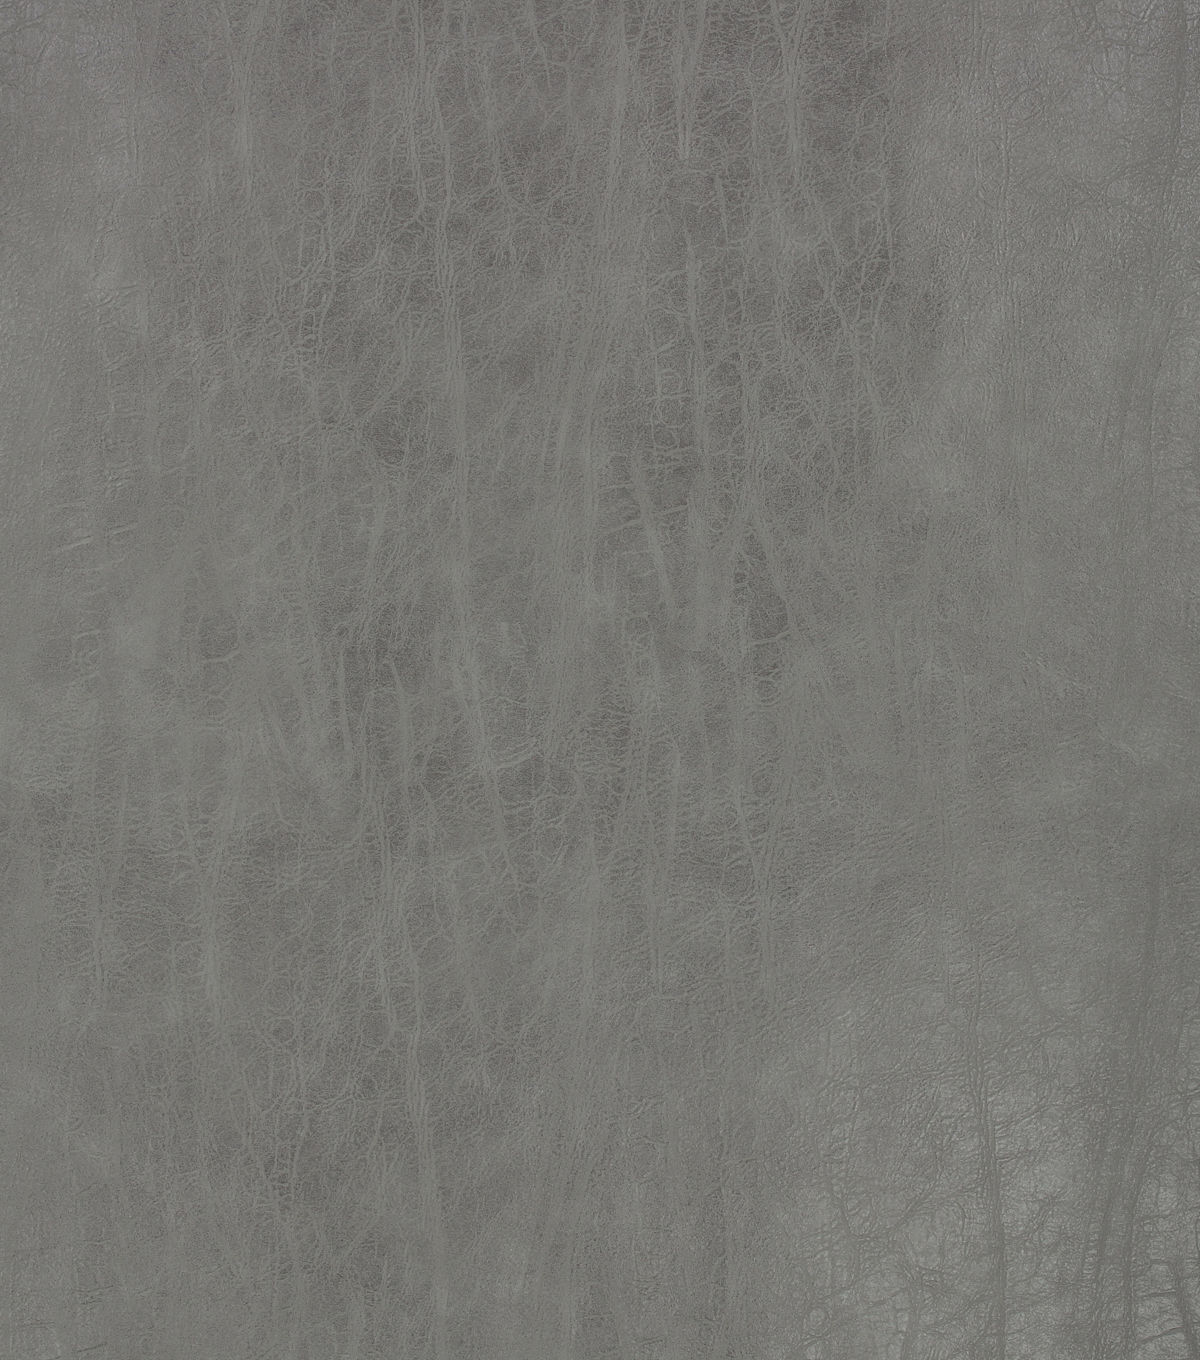 Richloom Studio Upholstery Vinyl-San Francisco Charcoal in